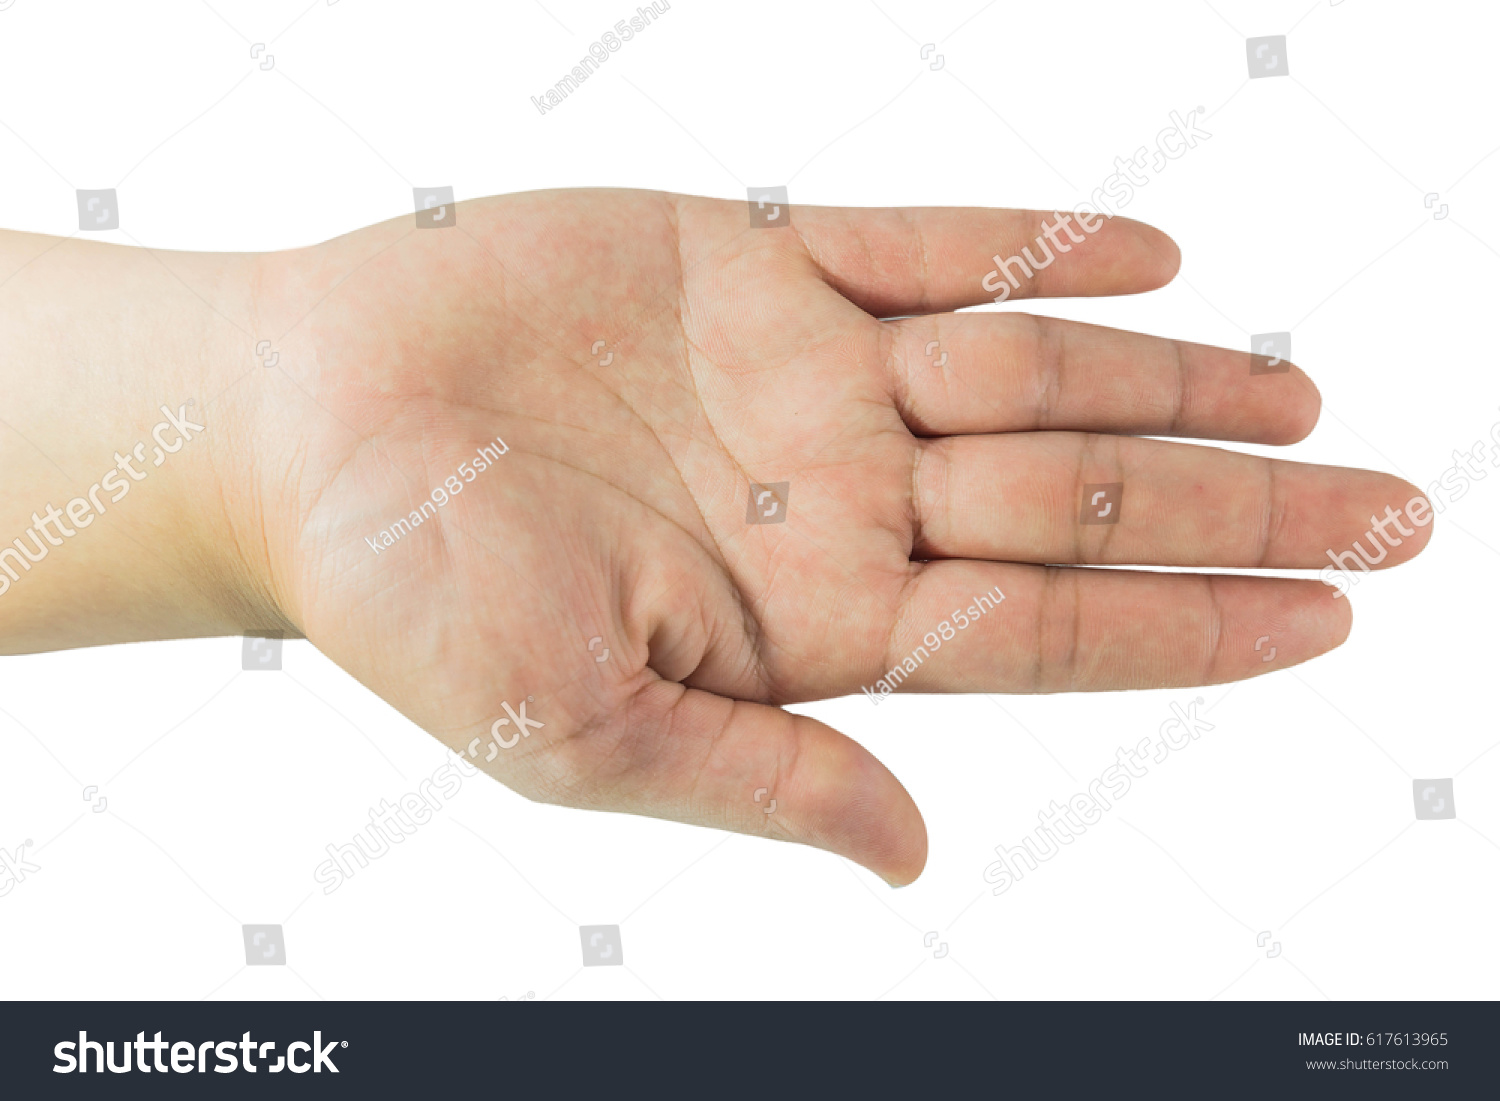 Hands Vital Organs Our Human Body Stock Photo Edit Now 617613965